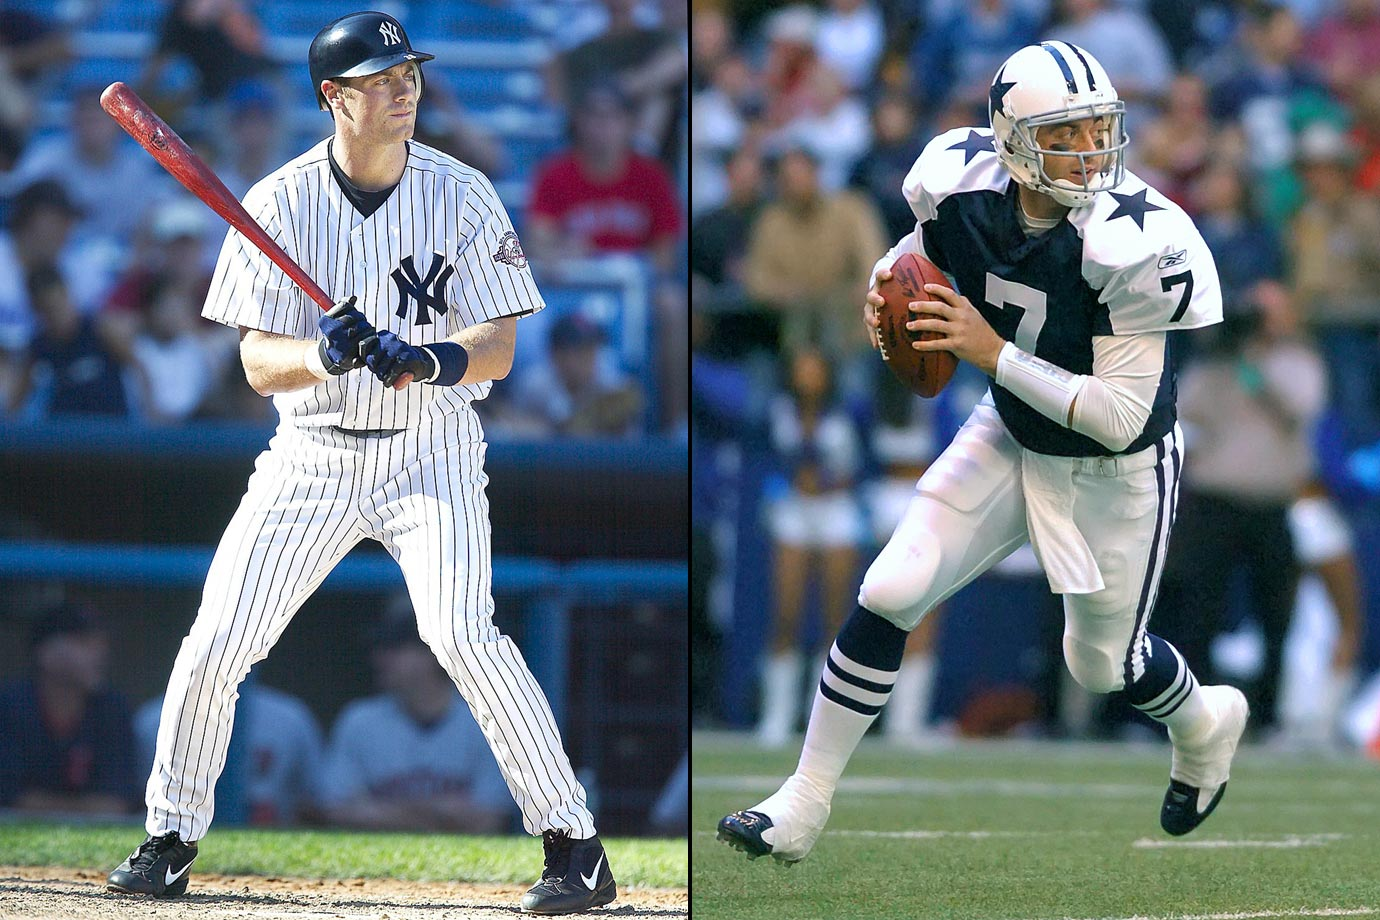 Coming out of college, Drew Henson opted for baseball, signing a contract with the Yankees to forego the NFL. However, after six years in the Yankees' and Reds' organizations with only nine at-bats to show for it, the third baseman jumped back to the NFL as a quarterback for the Dallas Cowboys. Henson saw little more success in the NFL, tossing just 18 pass attempts for the Cowboys, spending a year in NFL Europe and parts of the next two season on the Minnesota Vikings' practice squad. Henson finally caught on with the Detroit Lions in 2008 but attempted just two passes for them while fumbling twice. He is now retired from all professional sports.